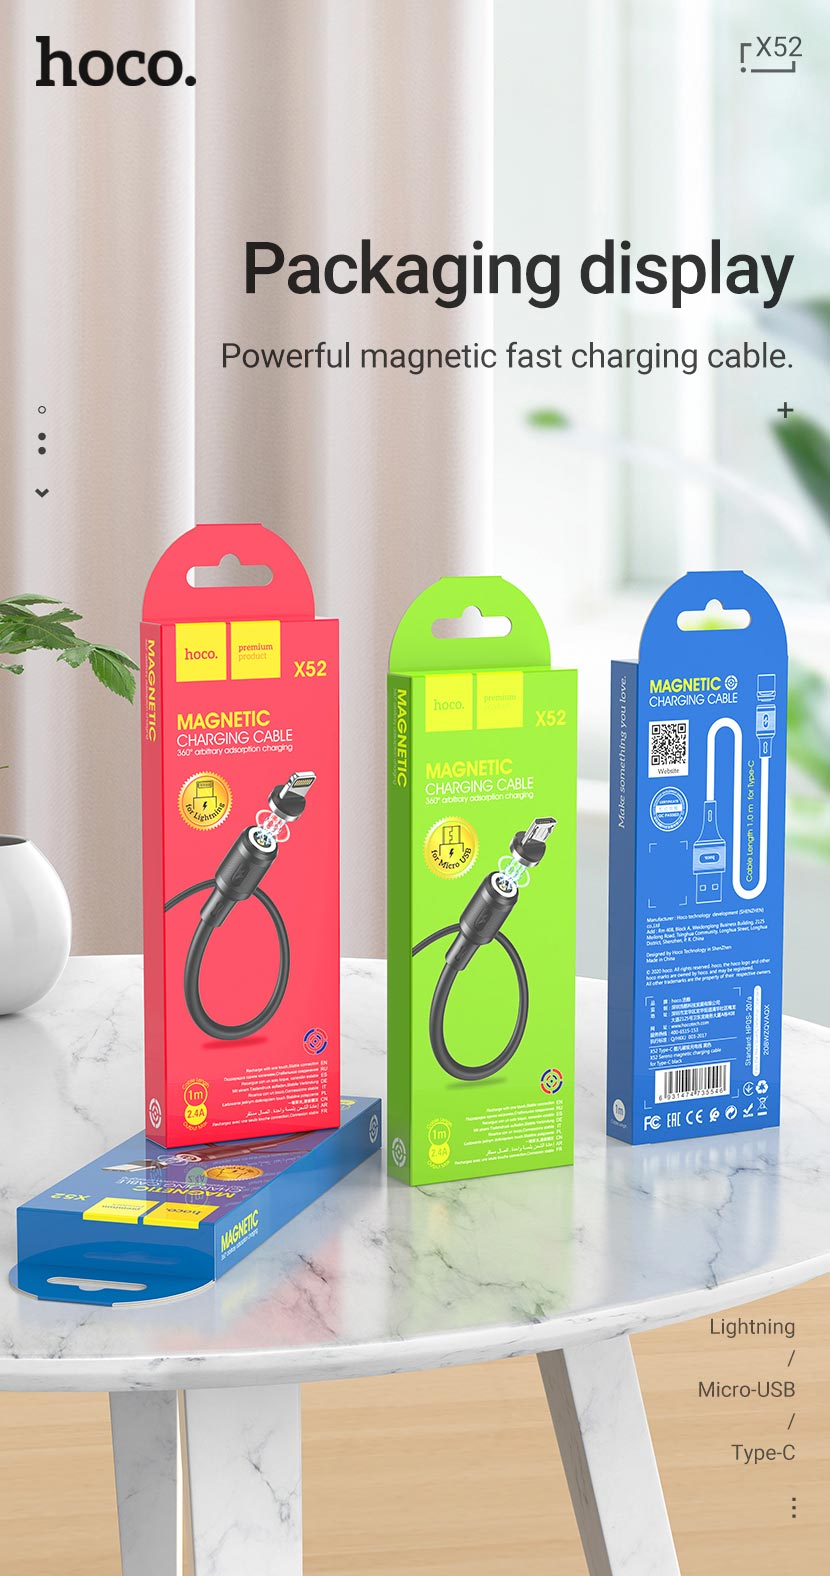 hoco news x52 sereno magnetic charging cable package en